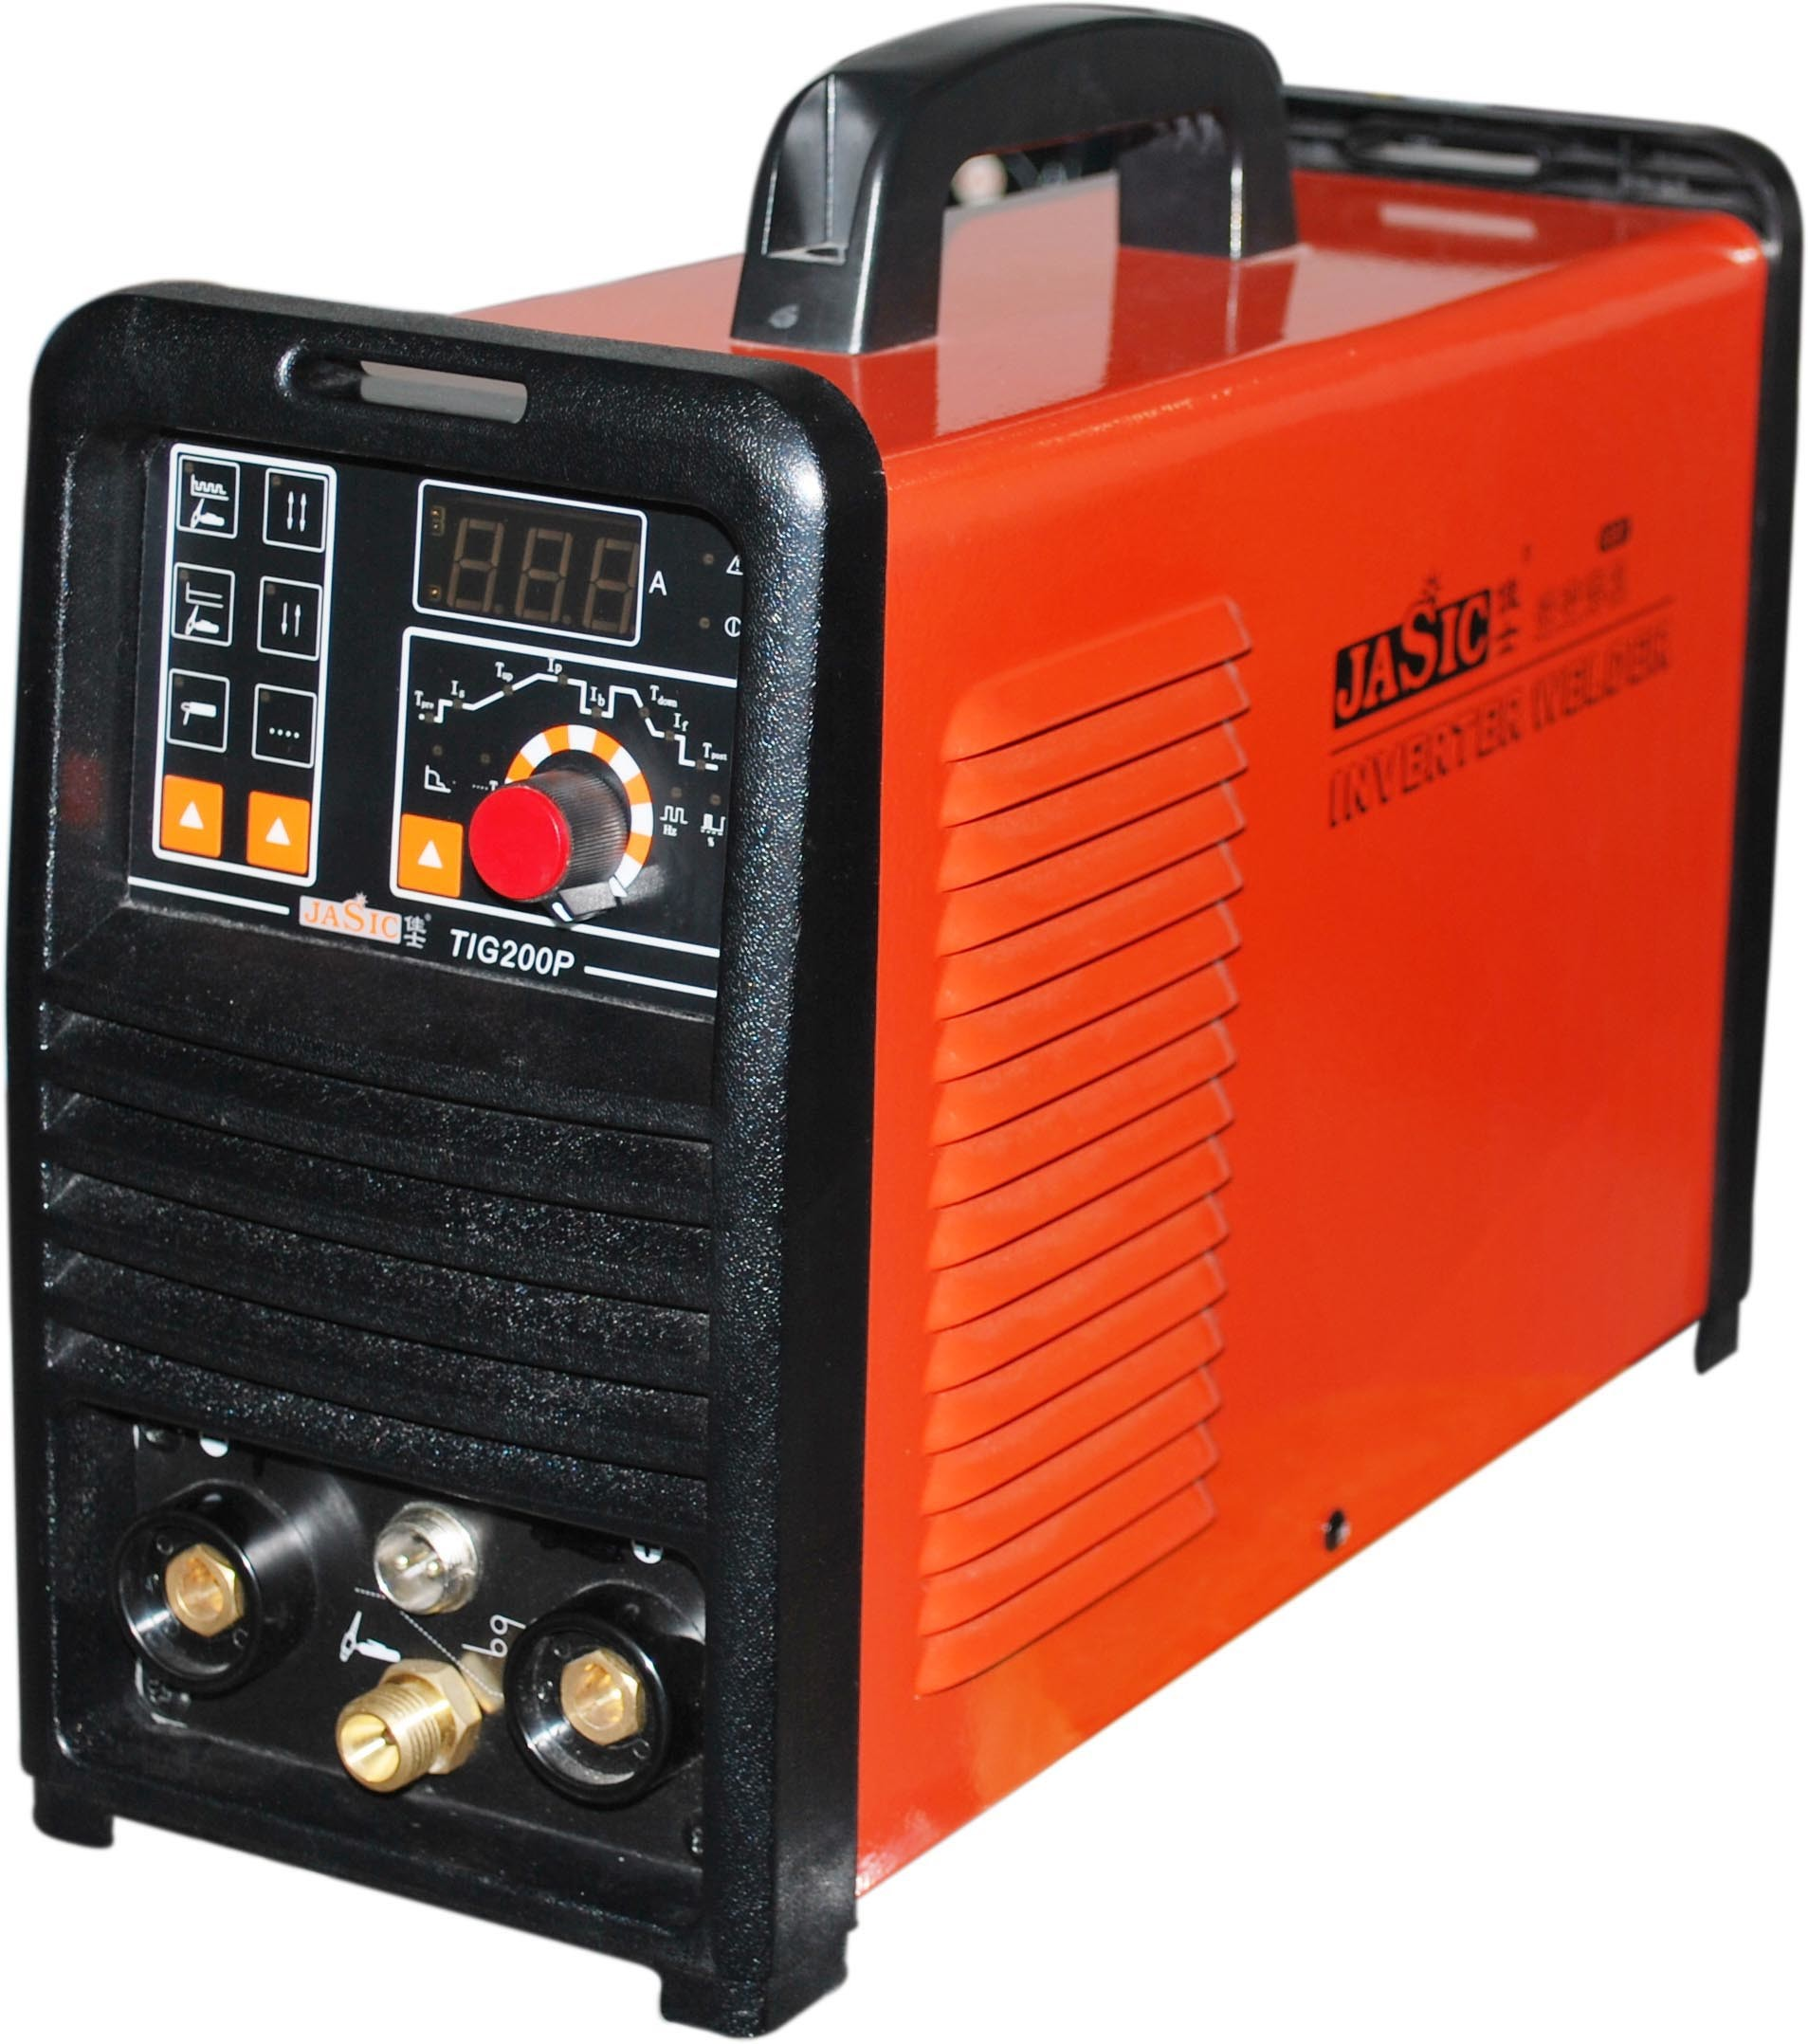 Digital Welding Machine (TIG200P)